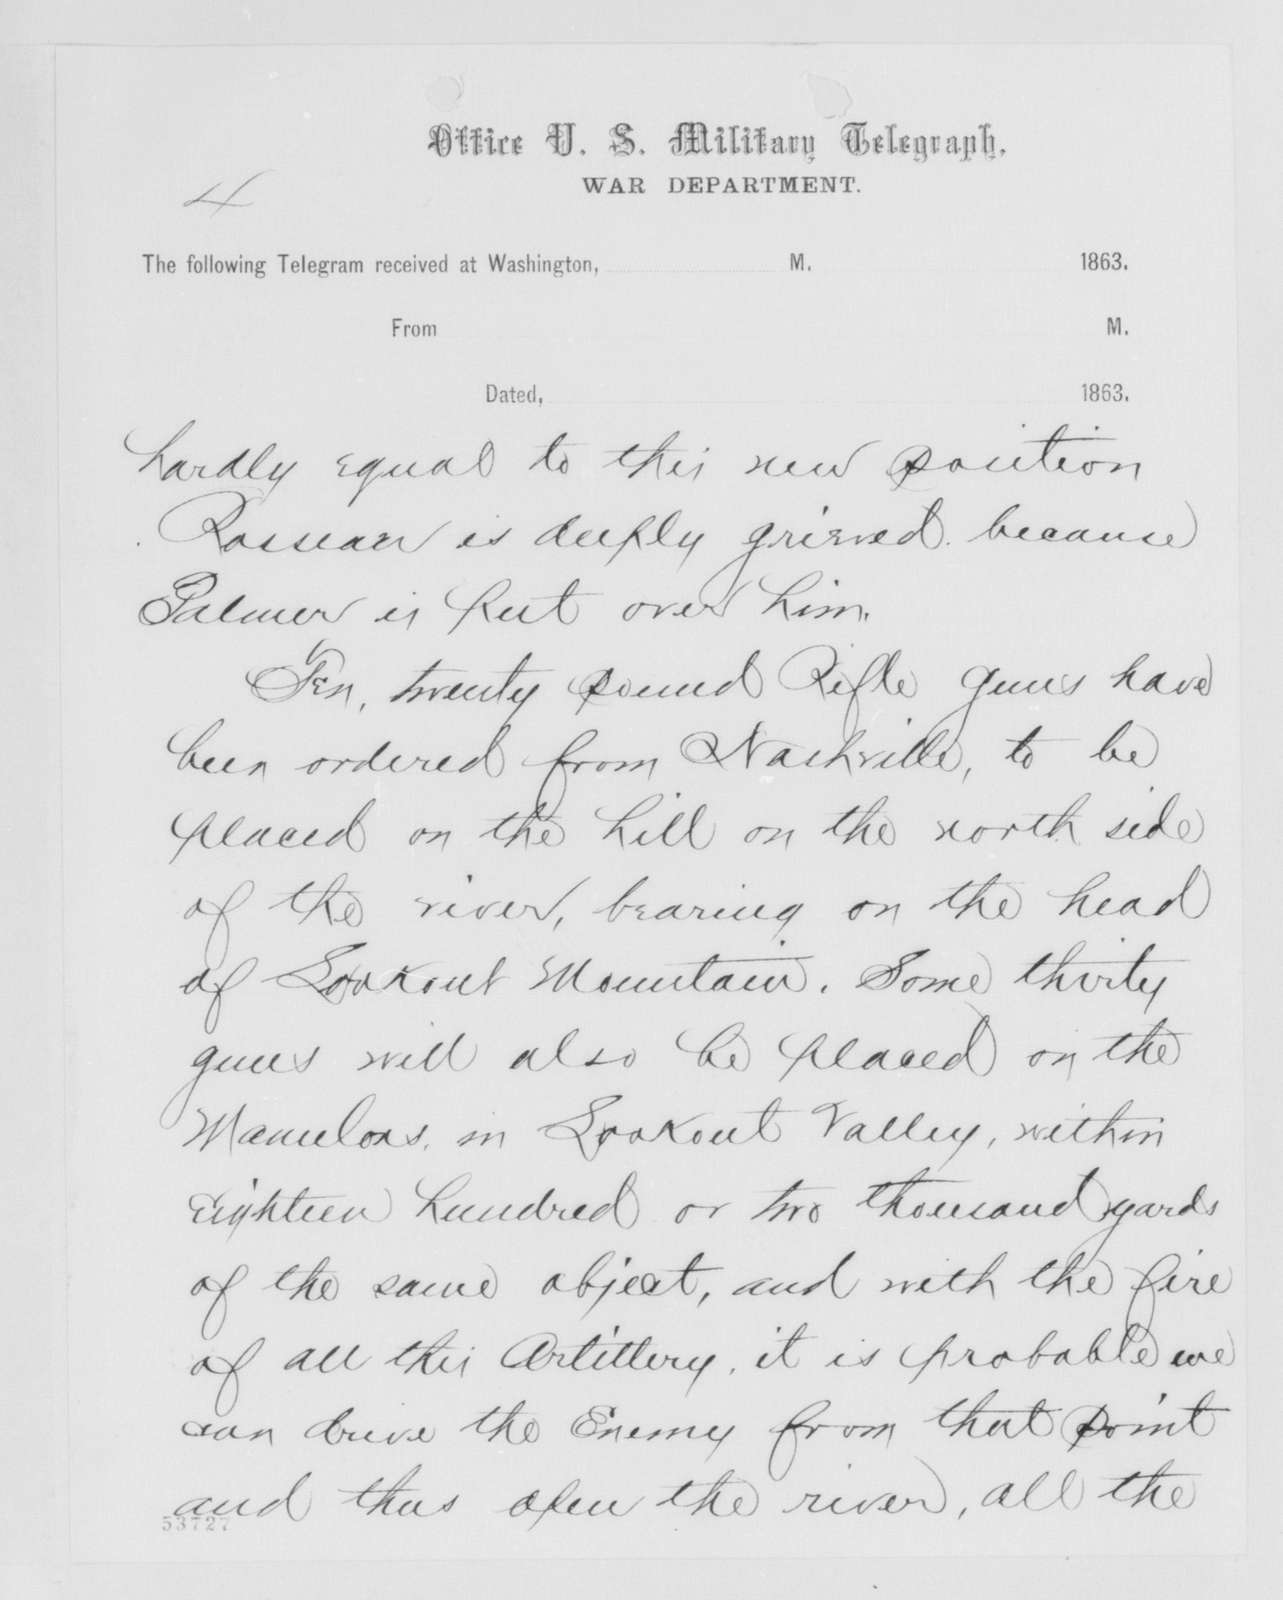 Edwin McMasters Stanton Papers: Correspondence, 1831-1870; 1863; 1863, Oct. 31-Nov. 27